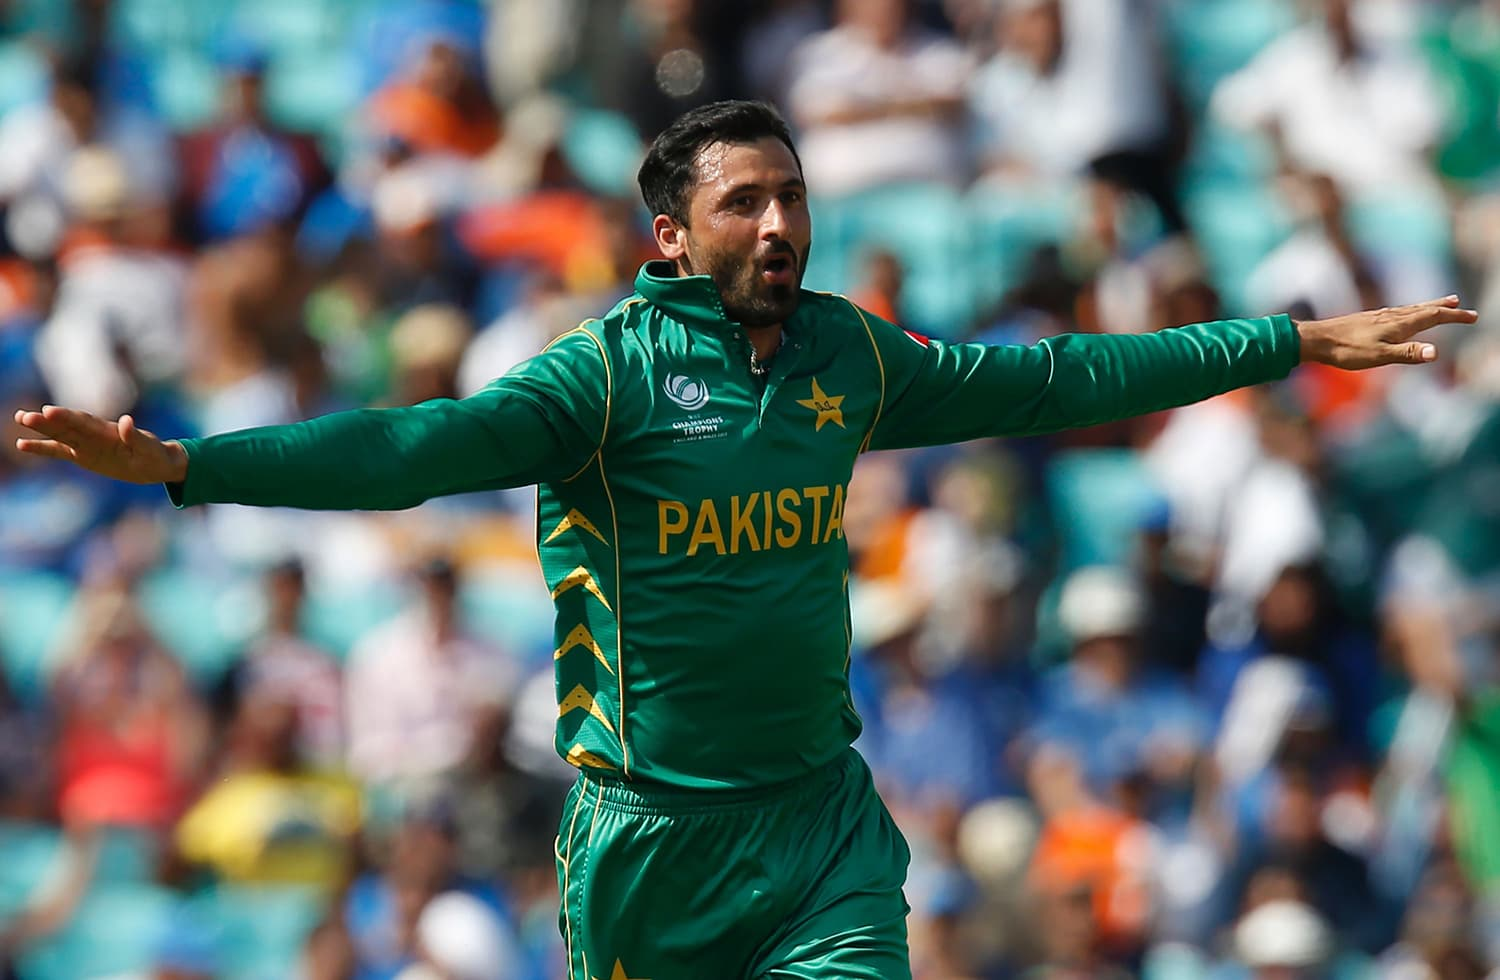 Junaid Khan celebrates after taking Ravindra Jadeja's wicket. — Reuters